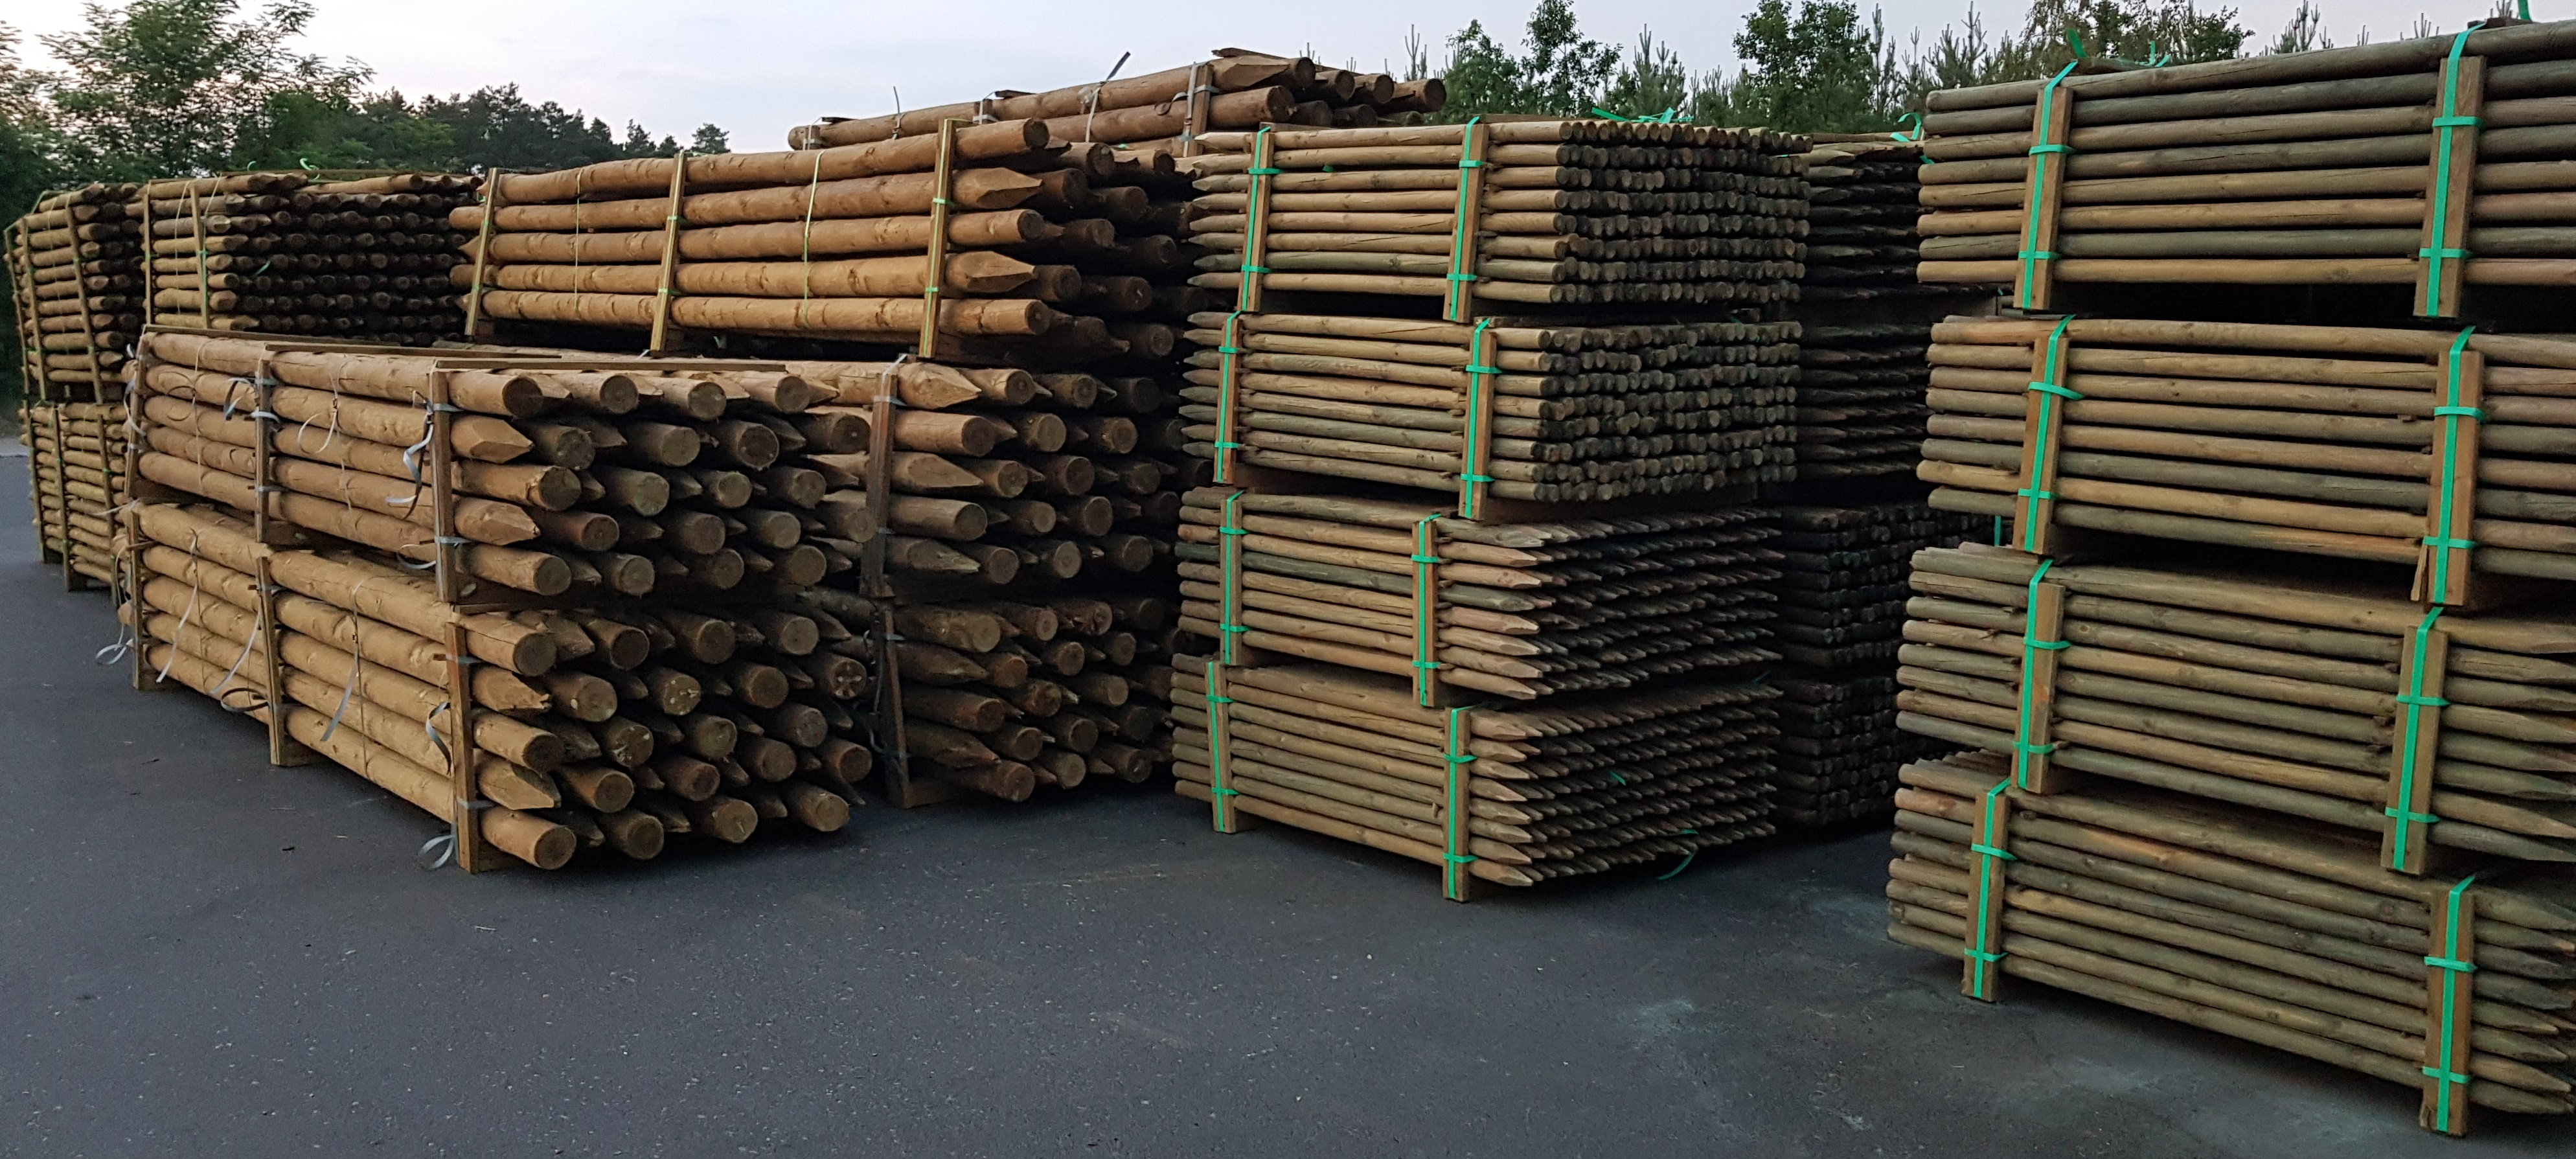 Pine Electrical Poles Timber From Poland with vacuum pressure impregnation treatment British Standard